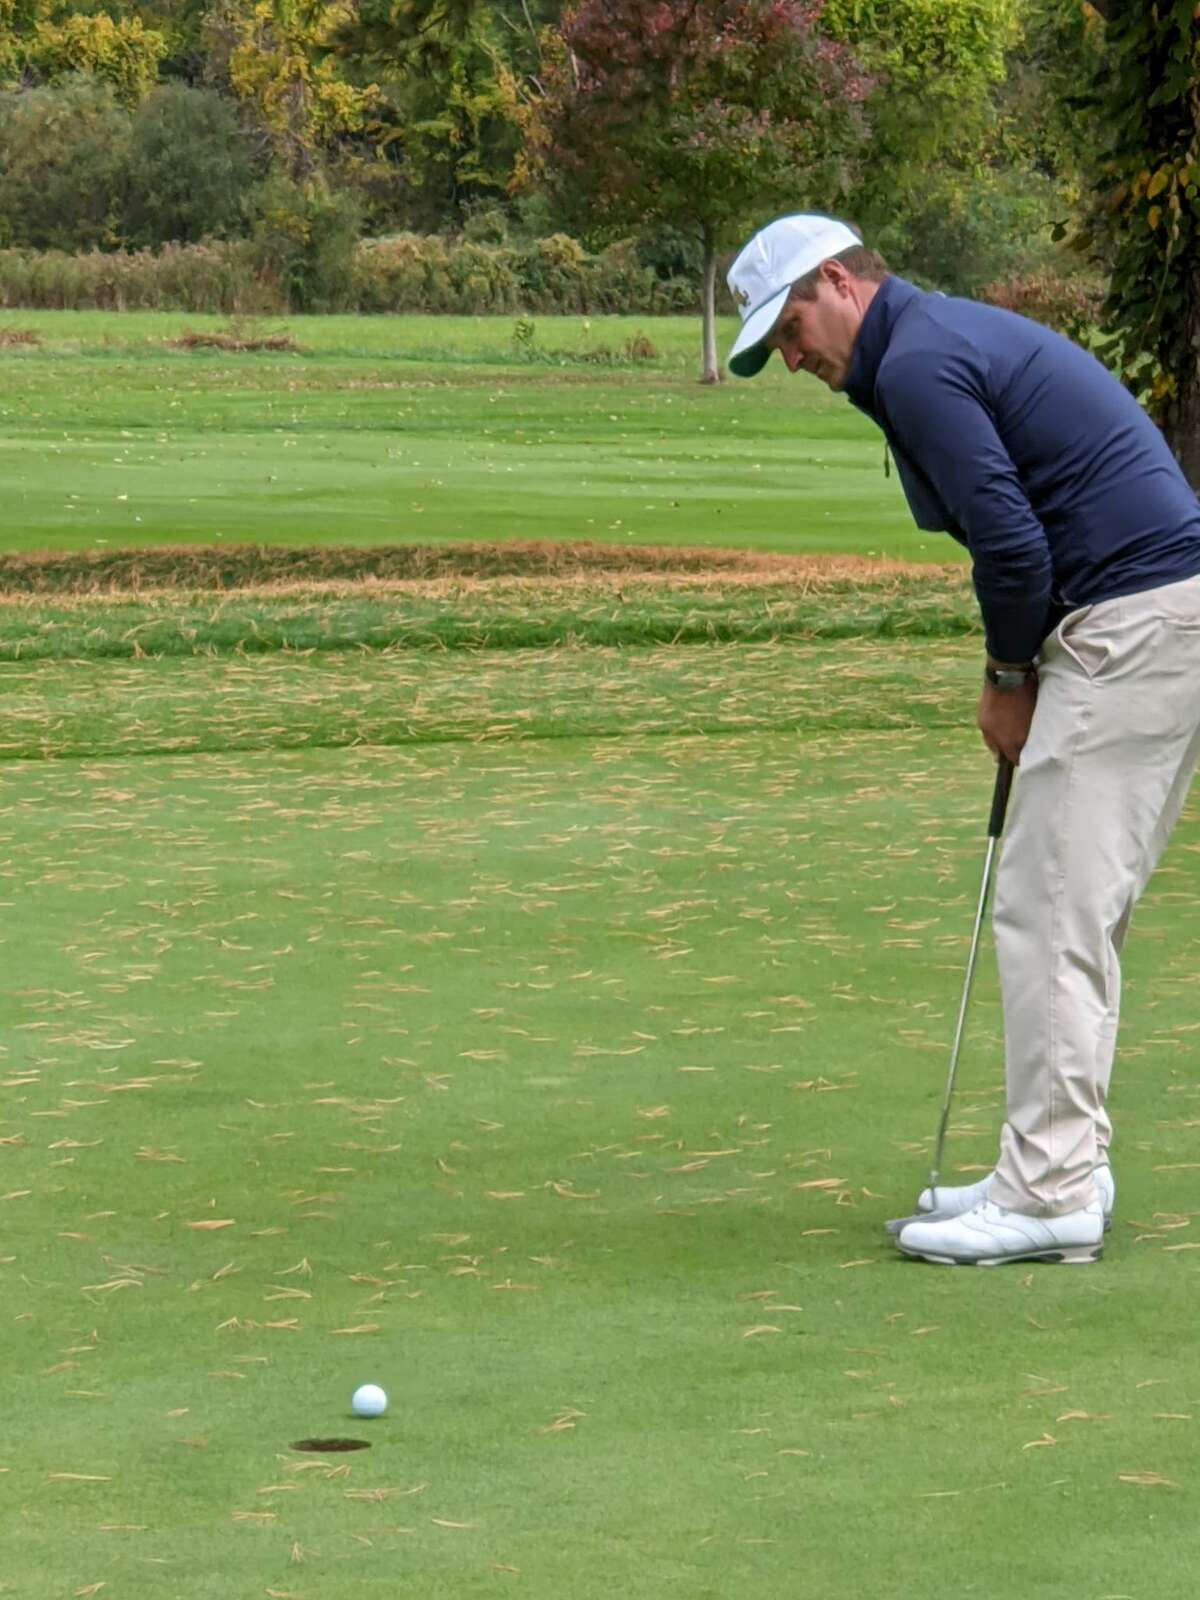 Pittsfield (Mass.) head pro Eric Mabee narrowly misses a birdie putt on the 14th hole during the Northeastern New York PGA Tour Championship on Wednesday, Oct. 7, 2020, at the Wyantenuck Country Club in Great Barrington, Mass. Mabee won the tournament by two strokes. (Pete Dougherty / Times Union)